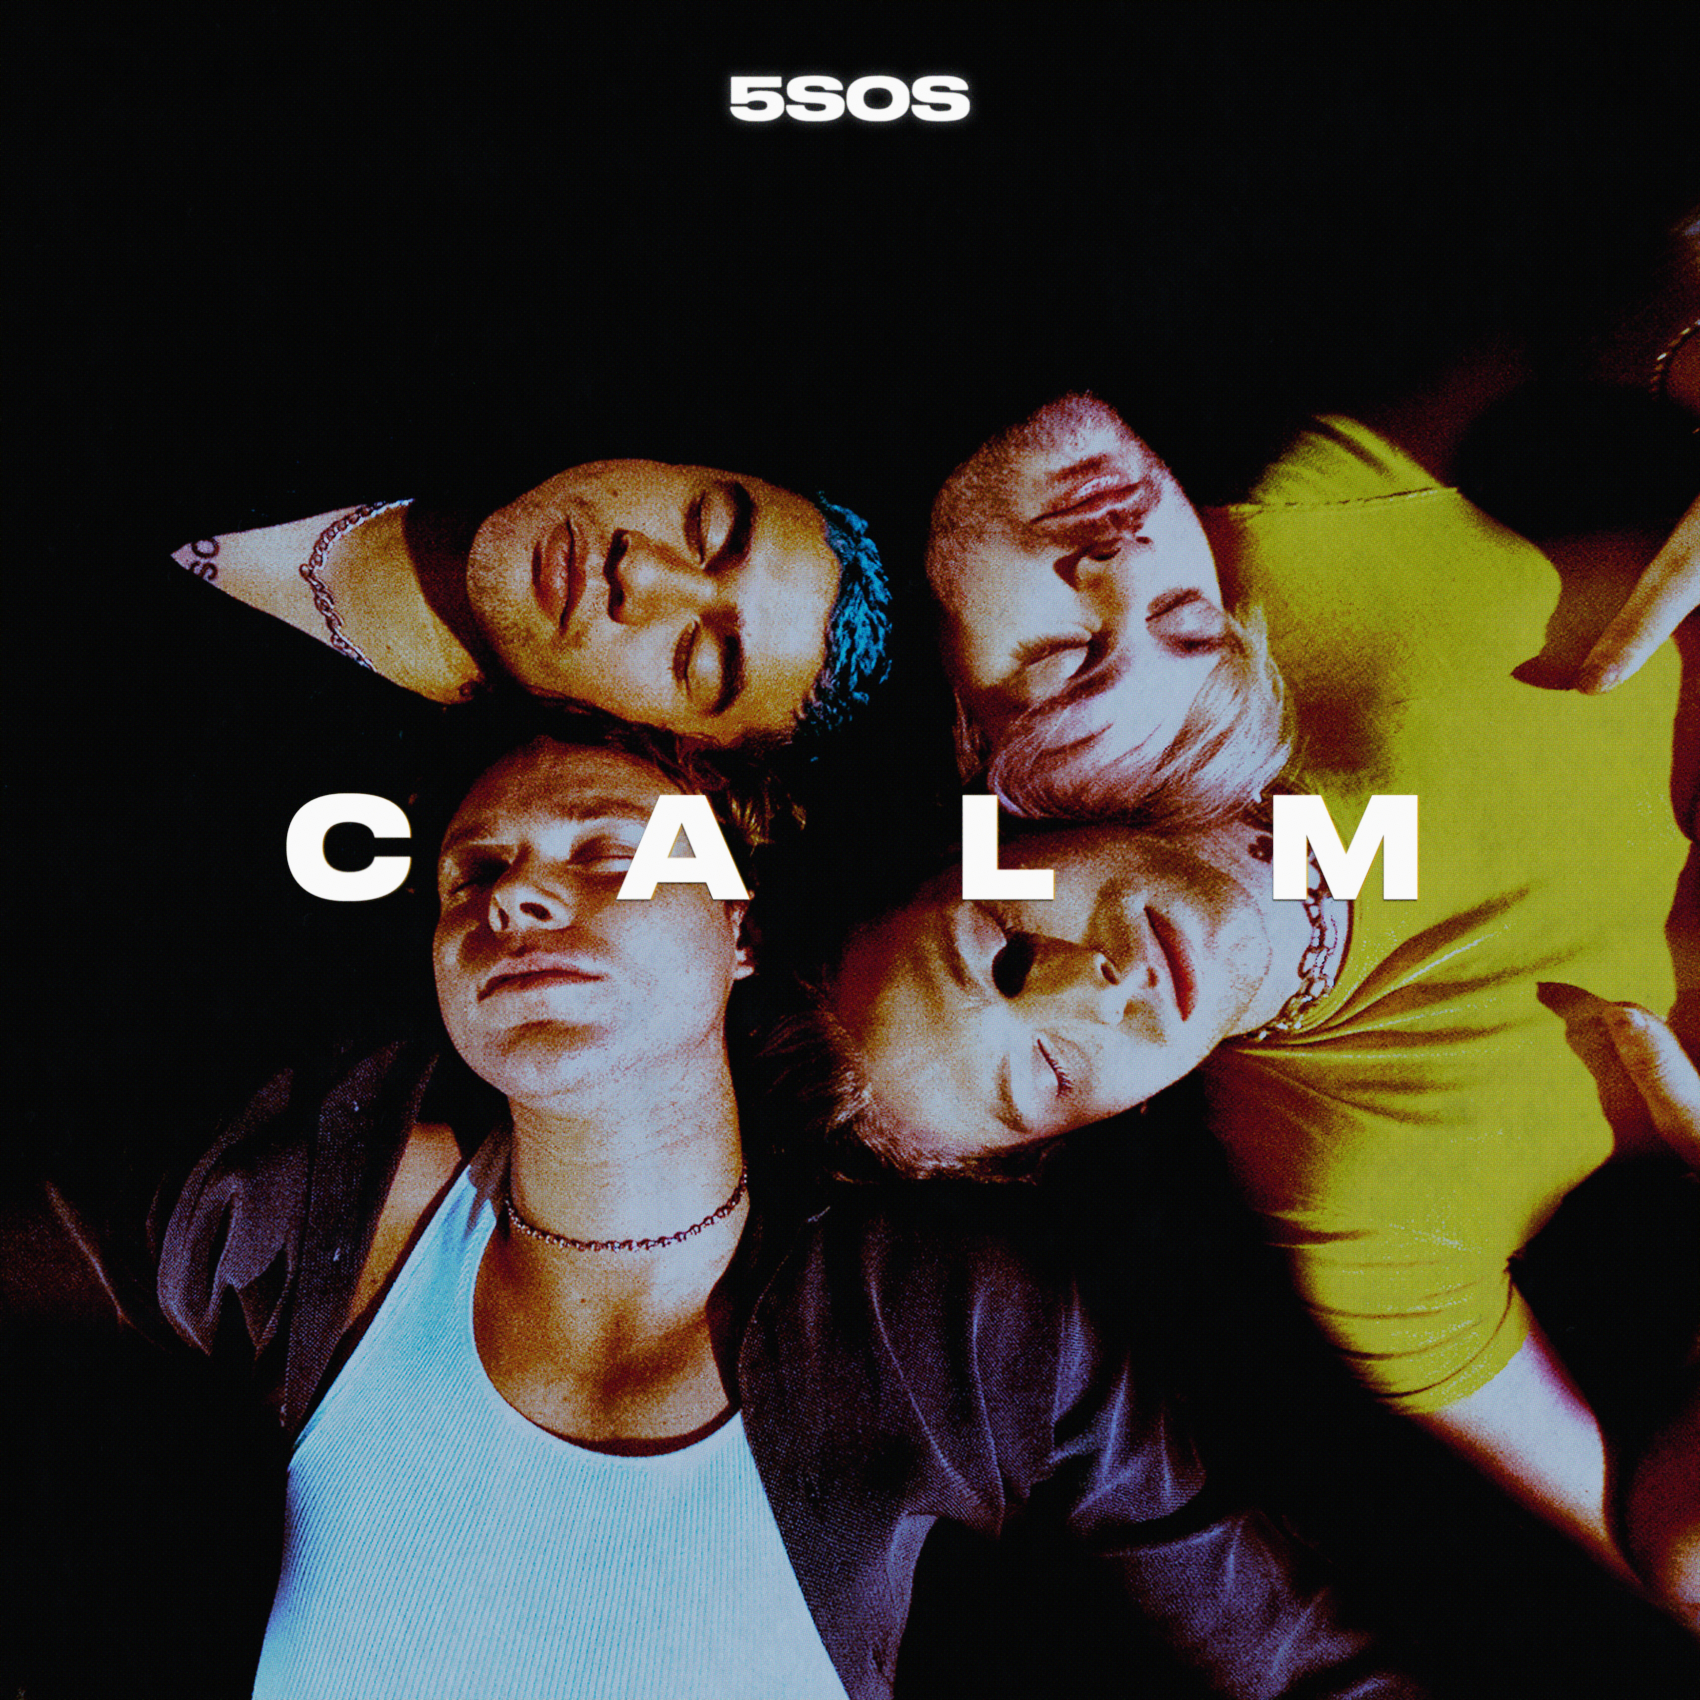 5 Seconds of Summer z albumem CALM